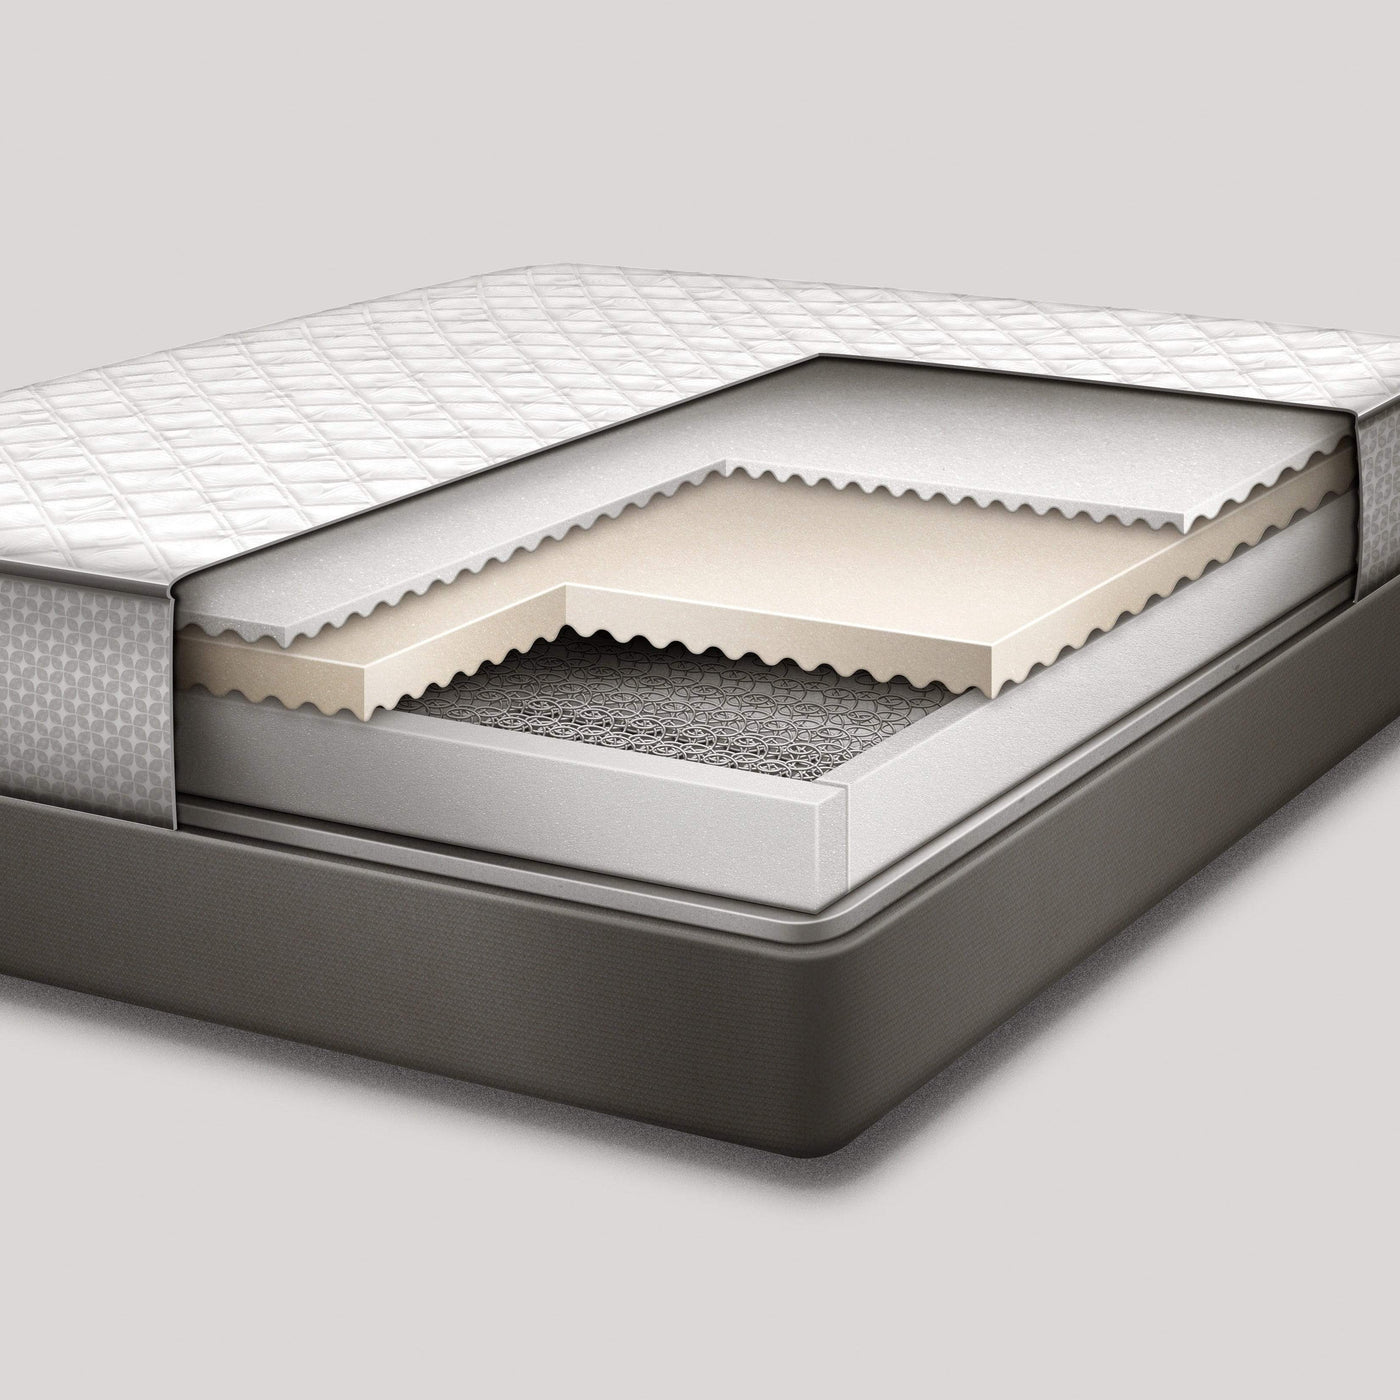 Sealy Posturepedic Snowball Plush Mattress – Mattress Warehouse